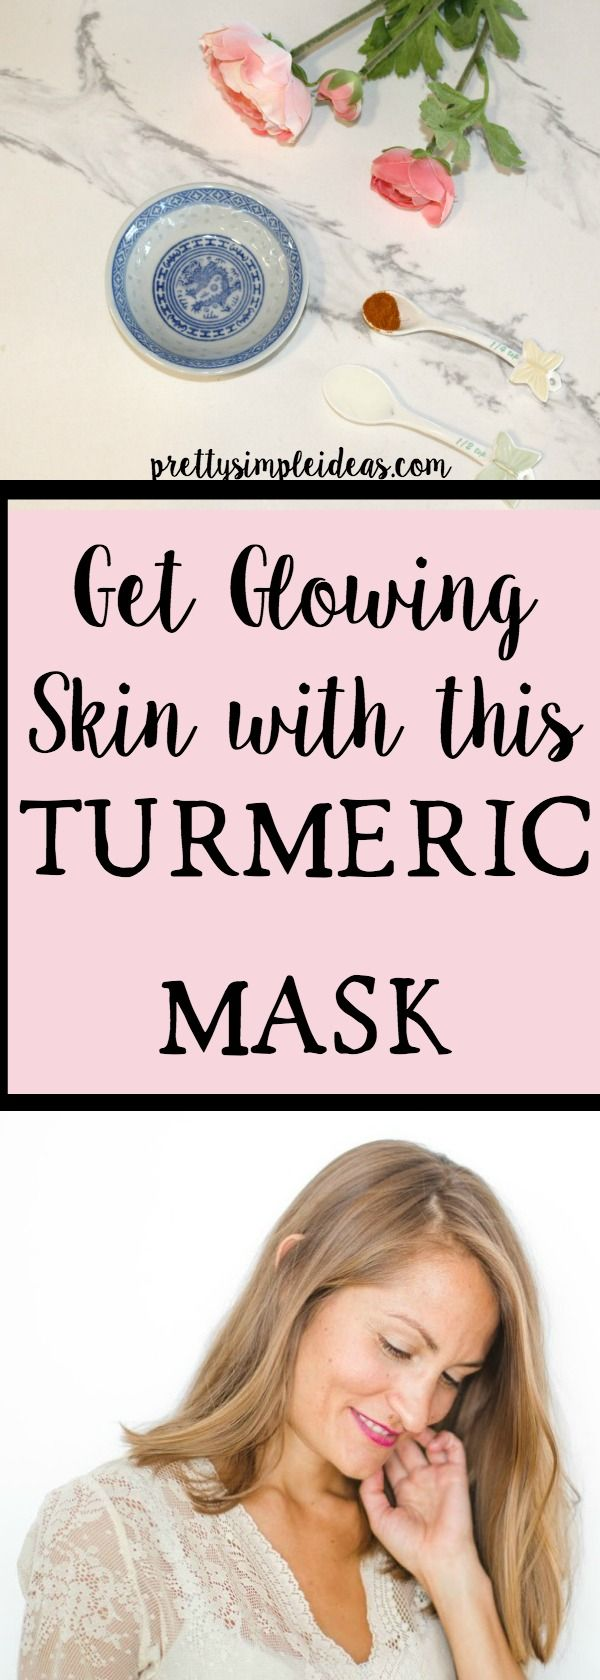 Do you ever get acne? Wrinkles? Rosacea? Dark circles? Dull skin? Previously I wrote about all the health benefits of turmeric. Now it's time to talk about the benefits of a a DIY Turmeric Mask for your skin.